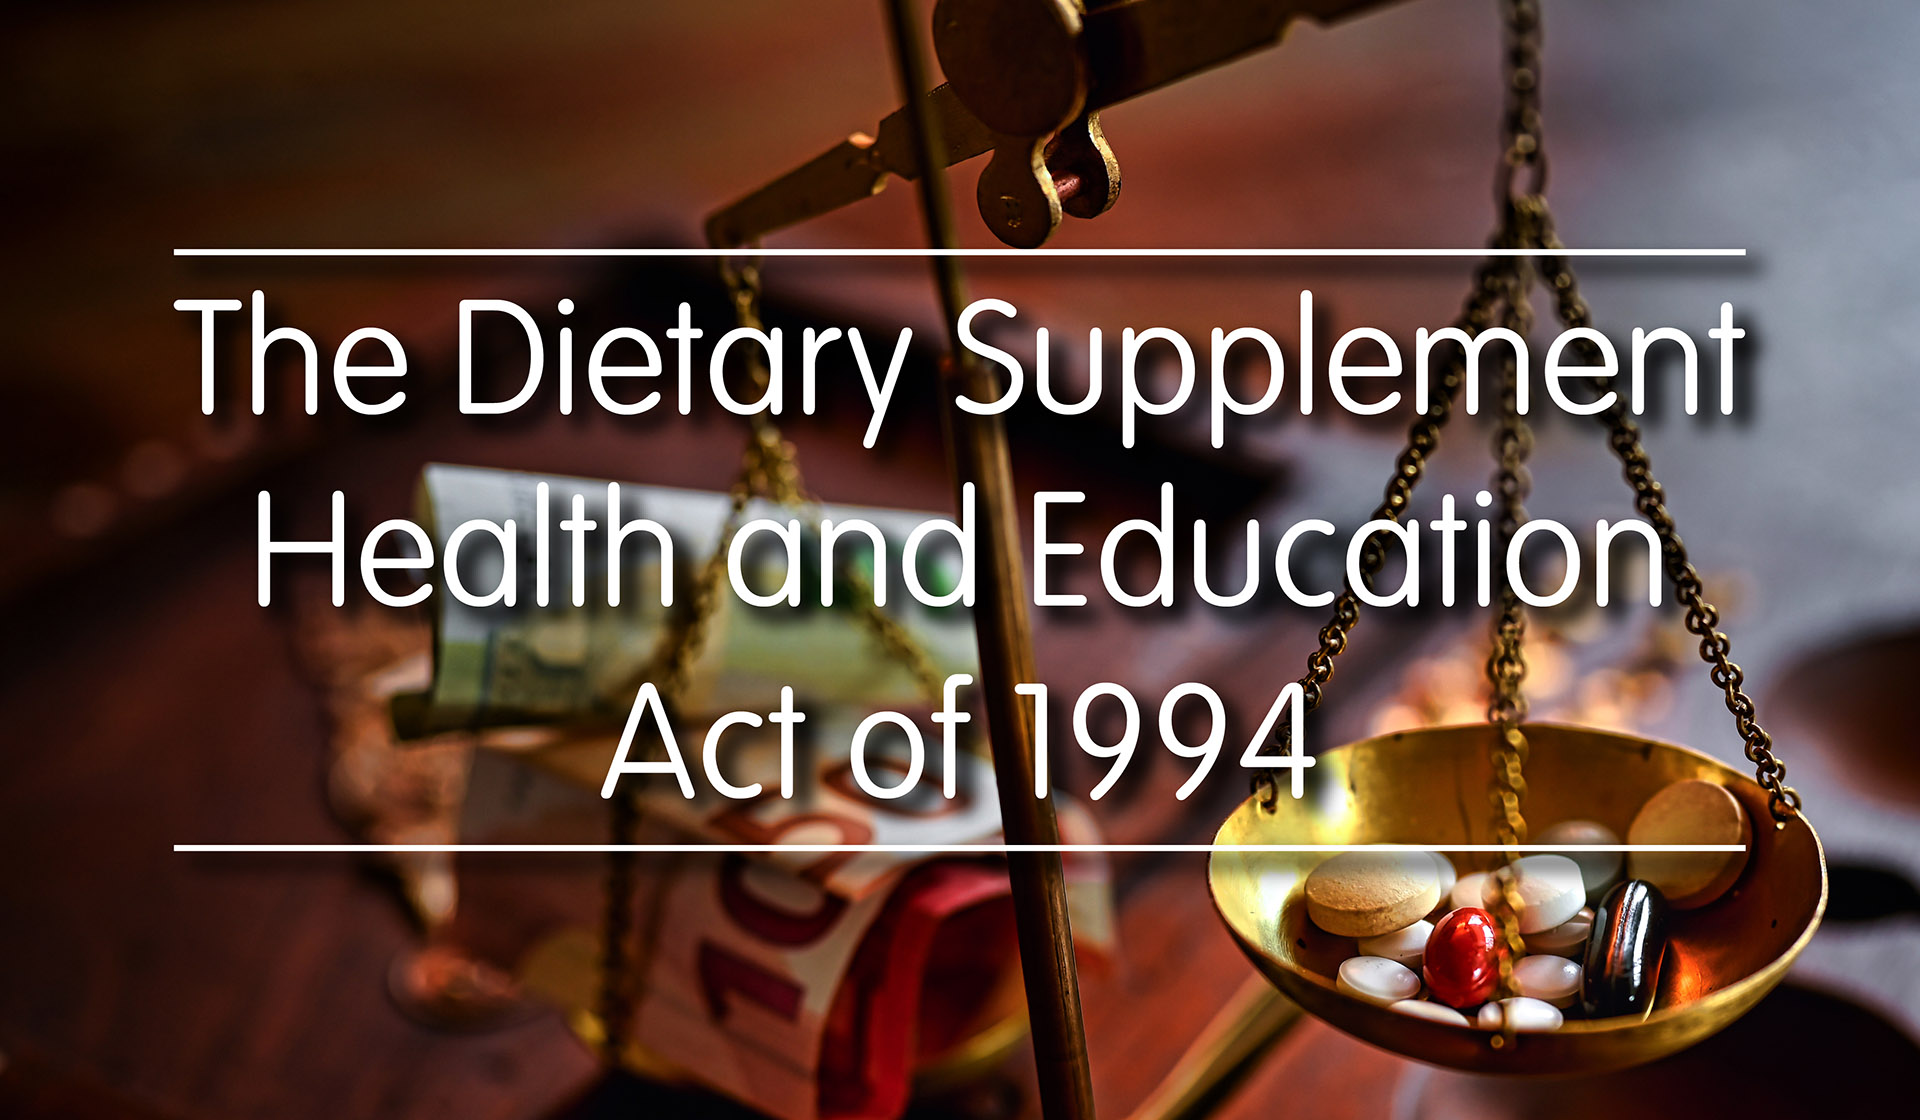 The Dietary Supplement Health and Education Act of 1994